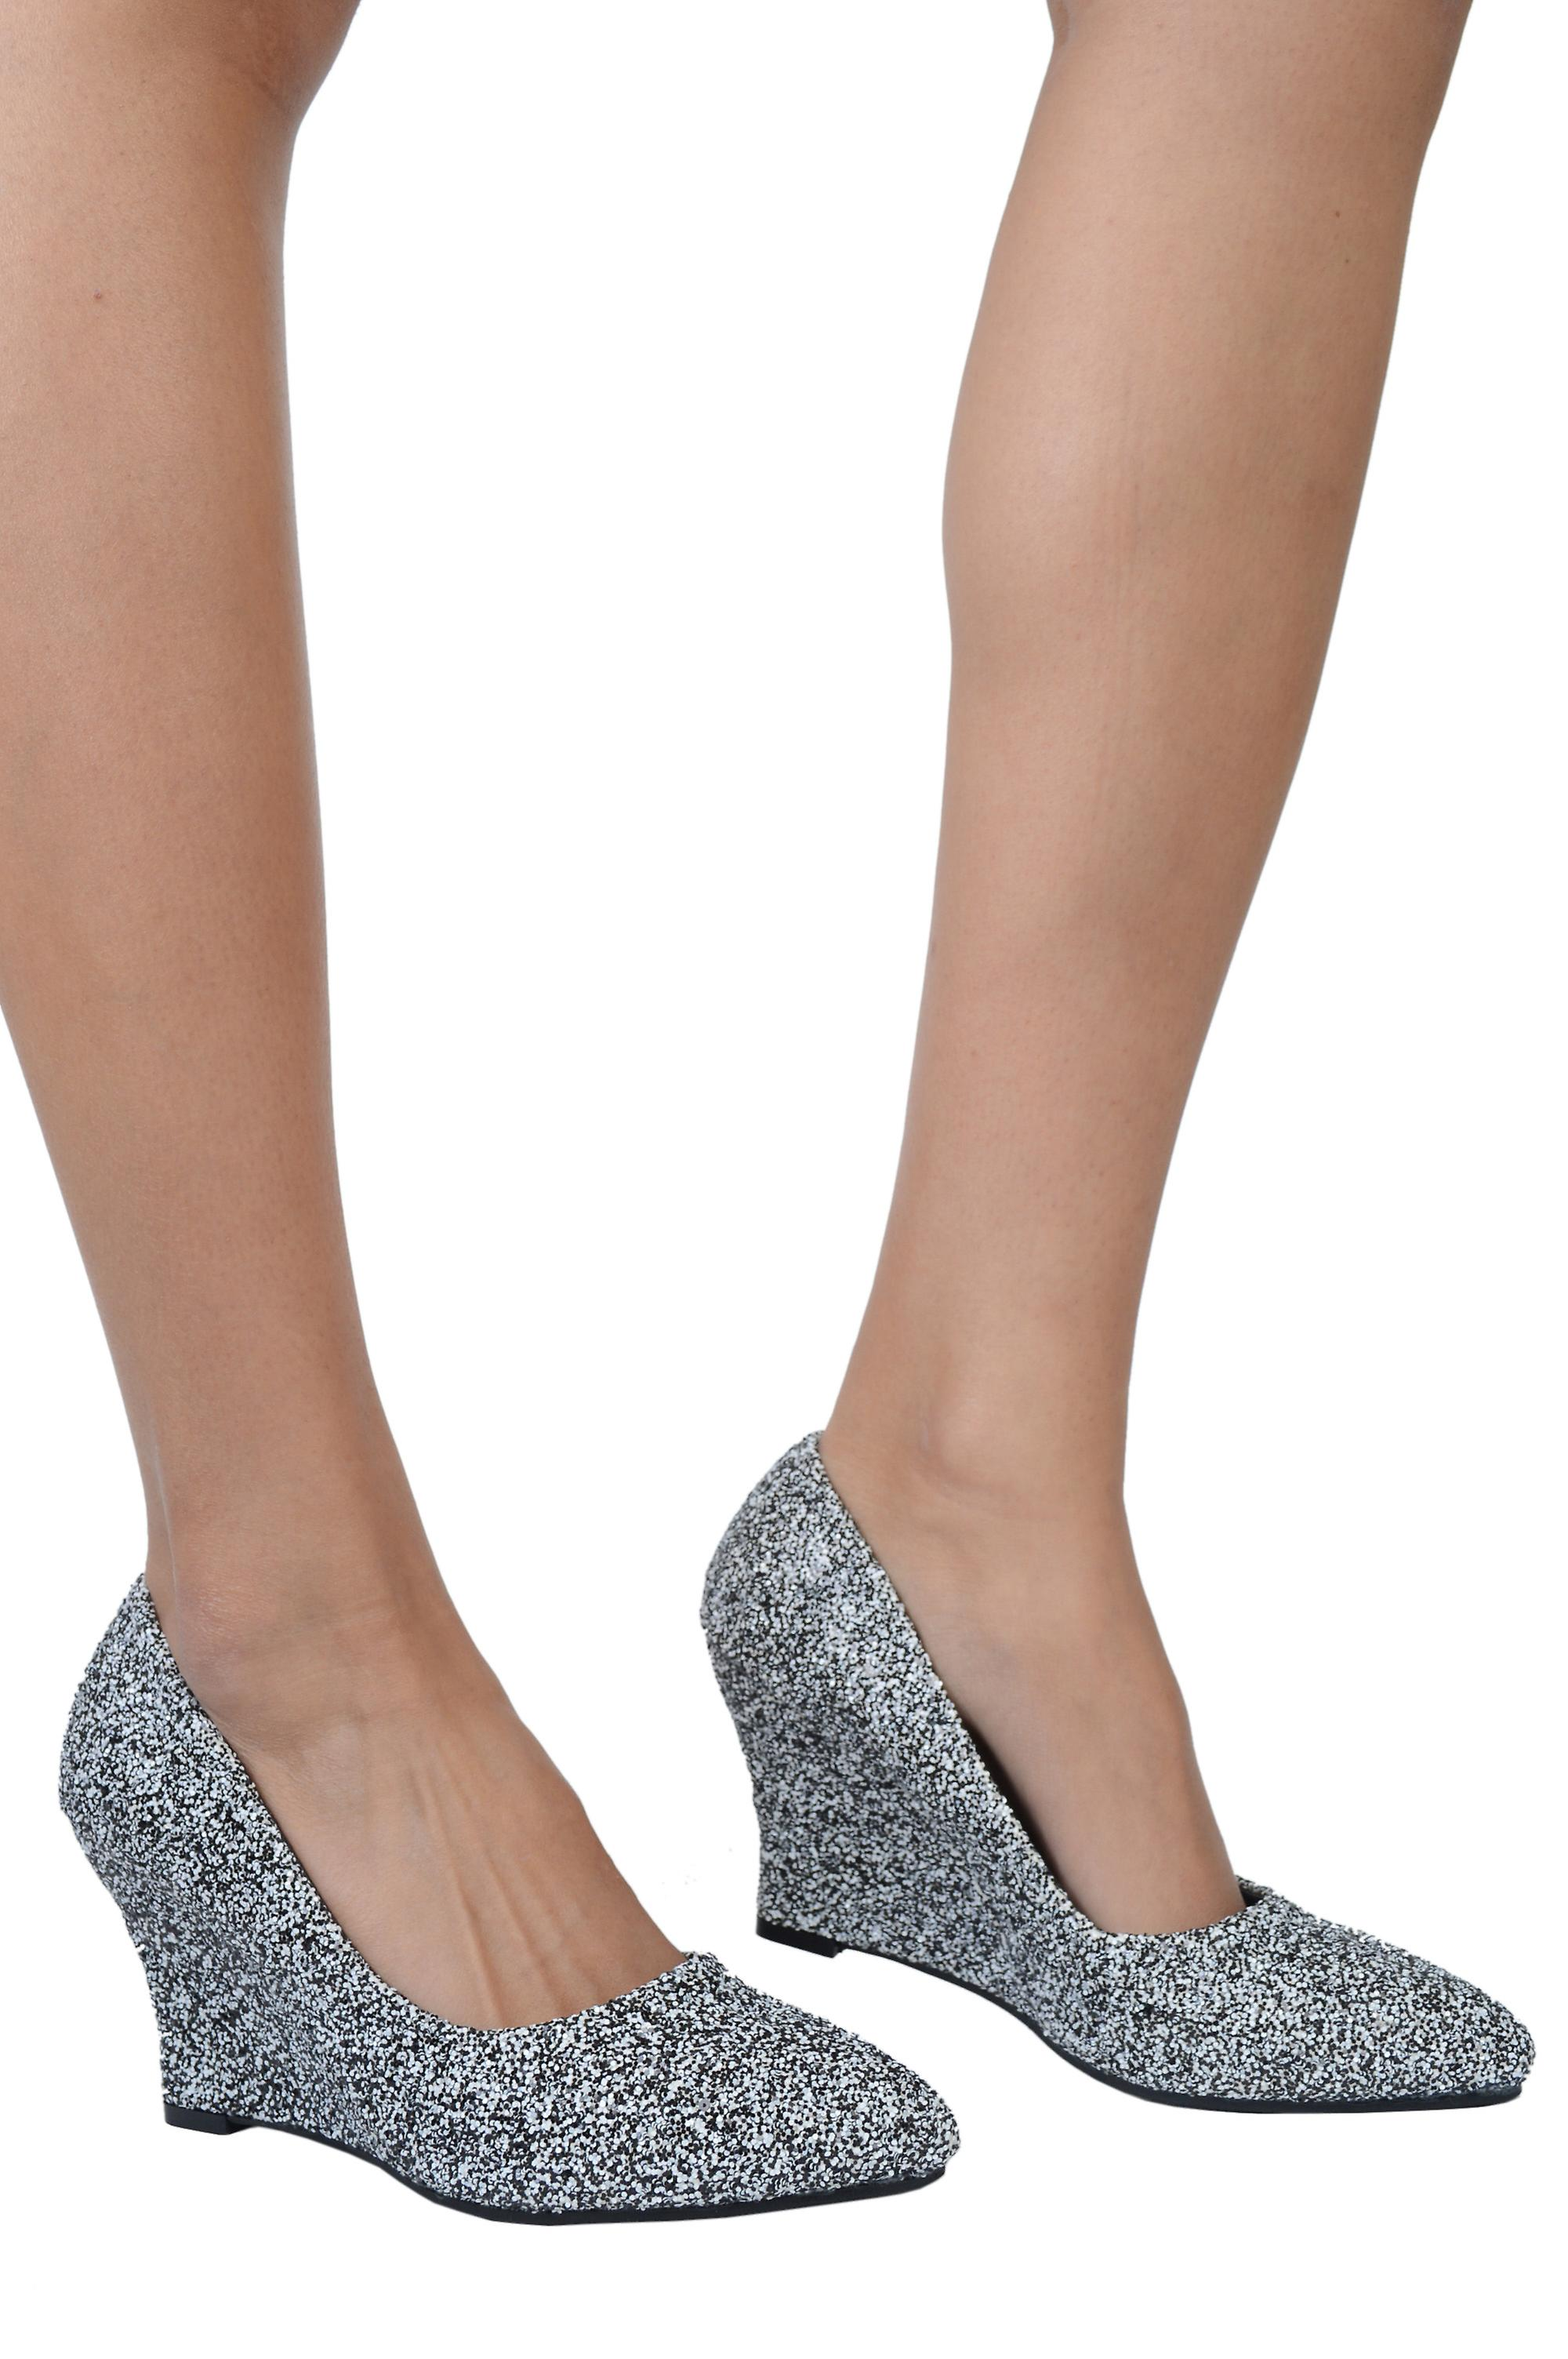 Lovemystyle Black, White and Silver Mixed Glitter Wedges